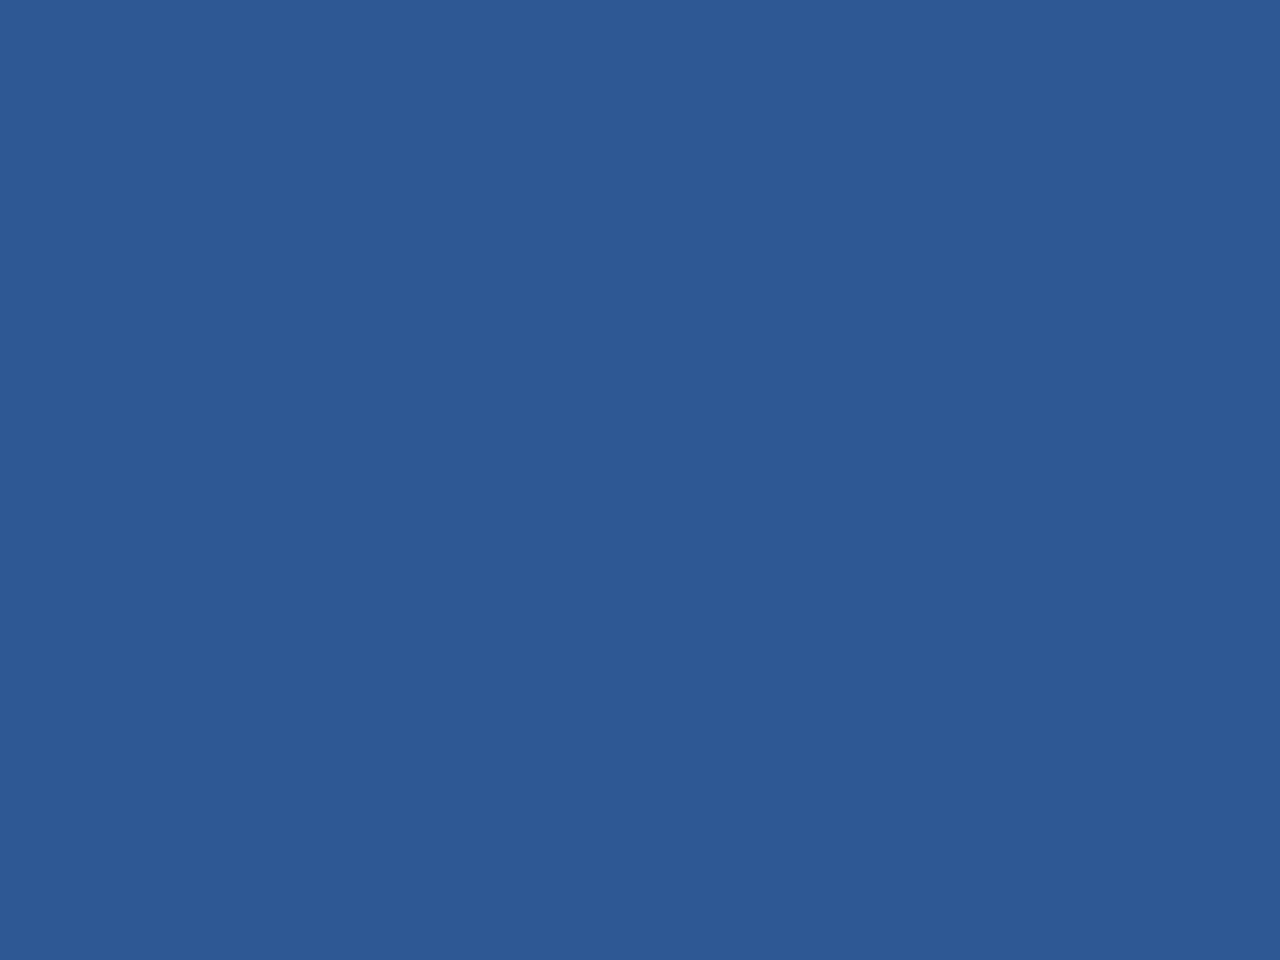 1280x960 Bdazzled Blue Solid Color Background